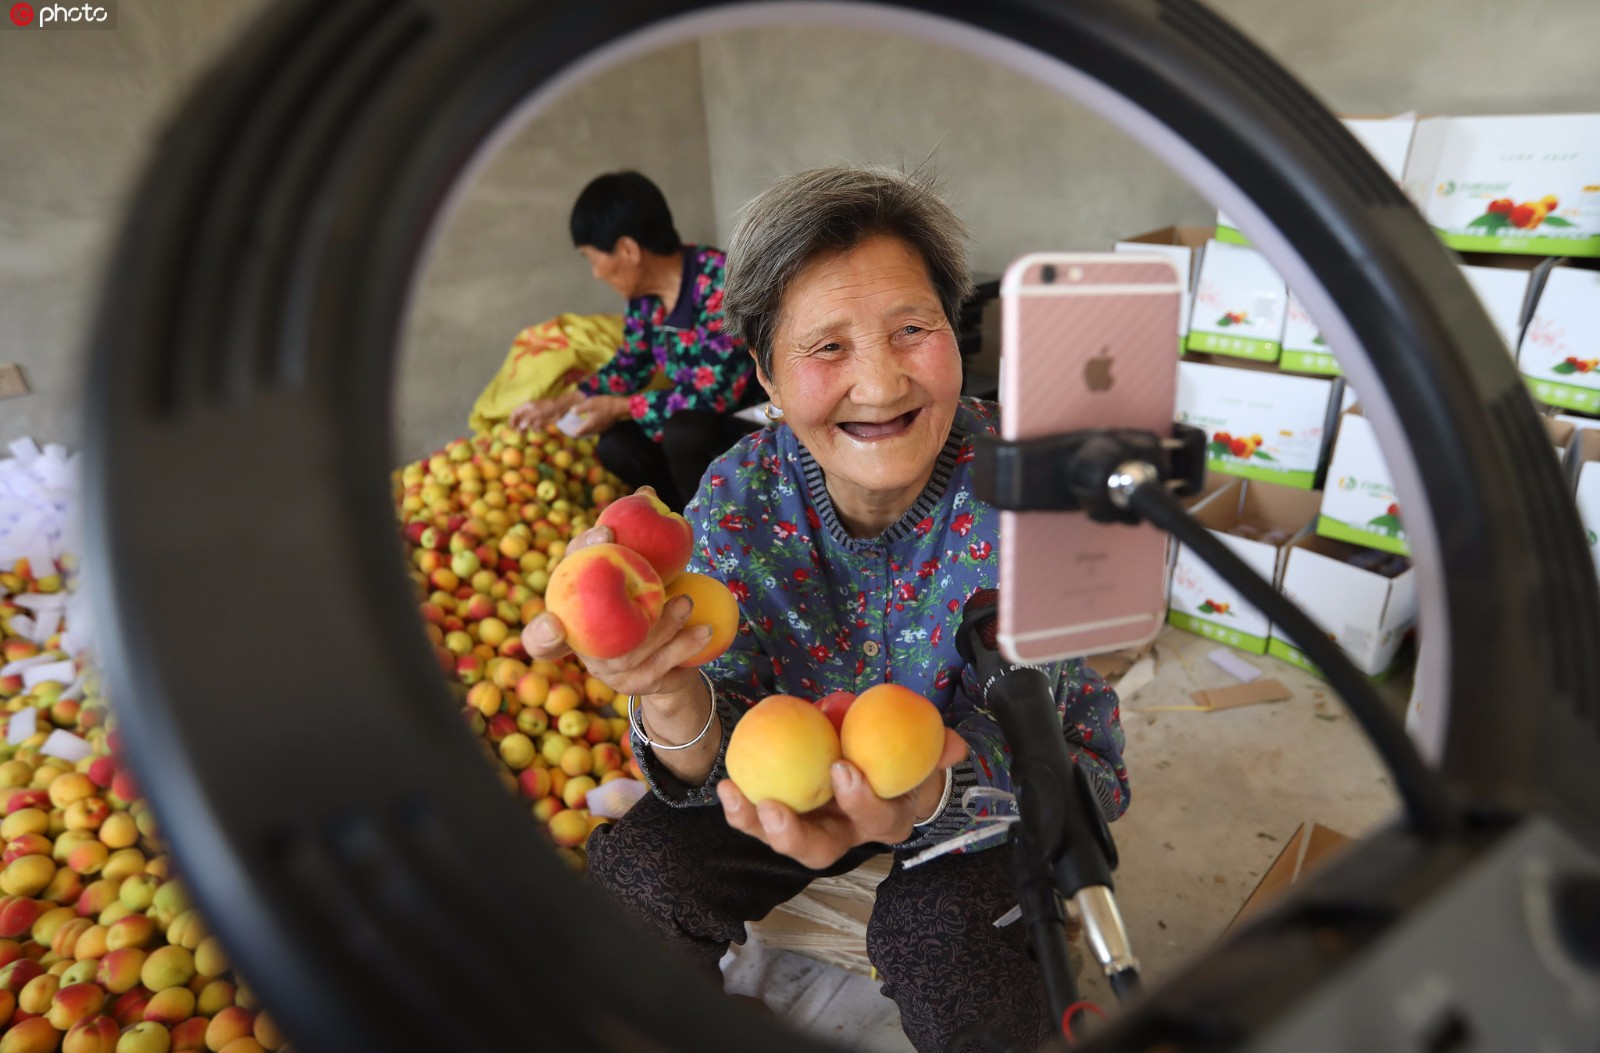 80-year-old granny sells local fruit through live streaming